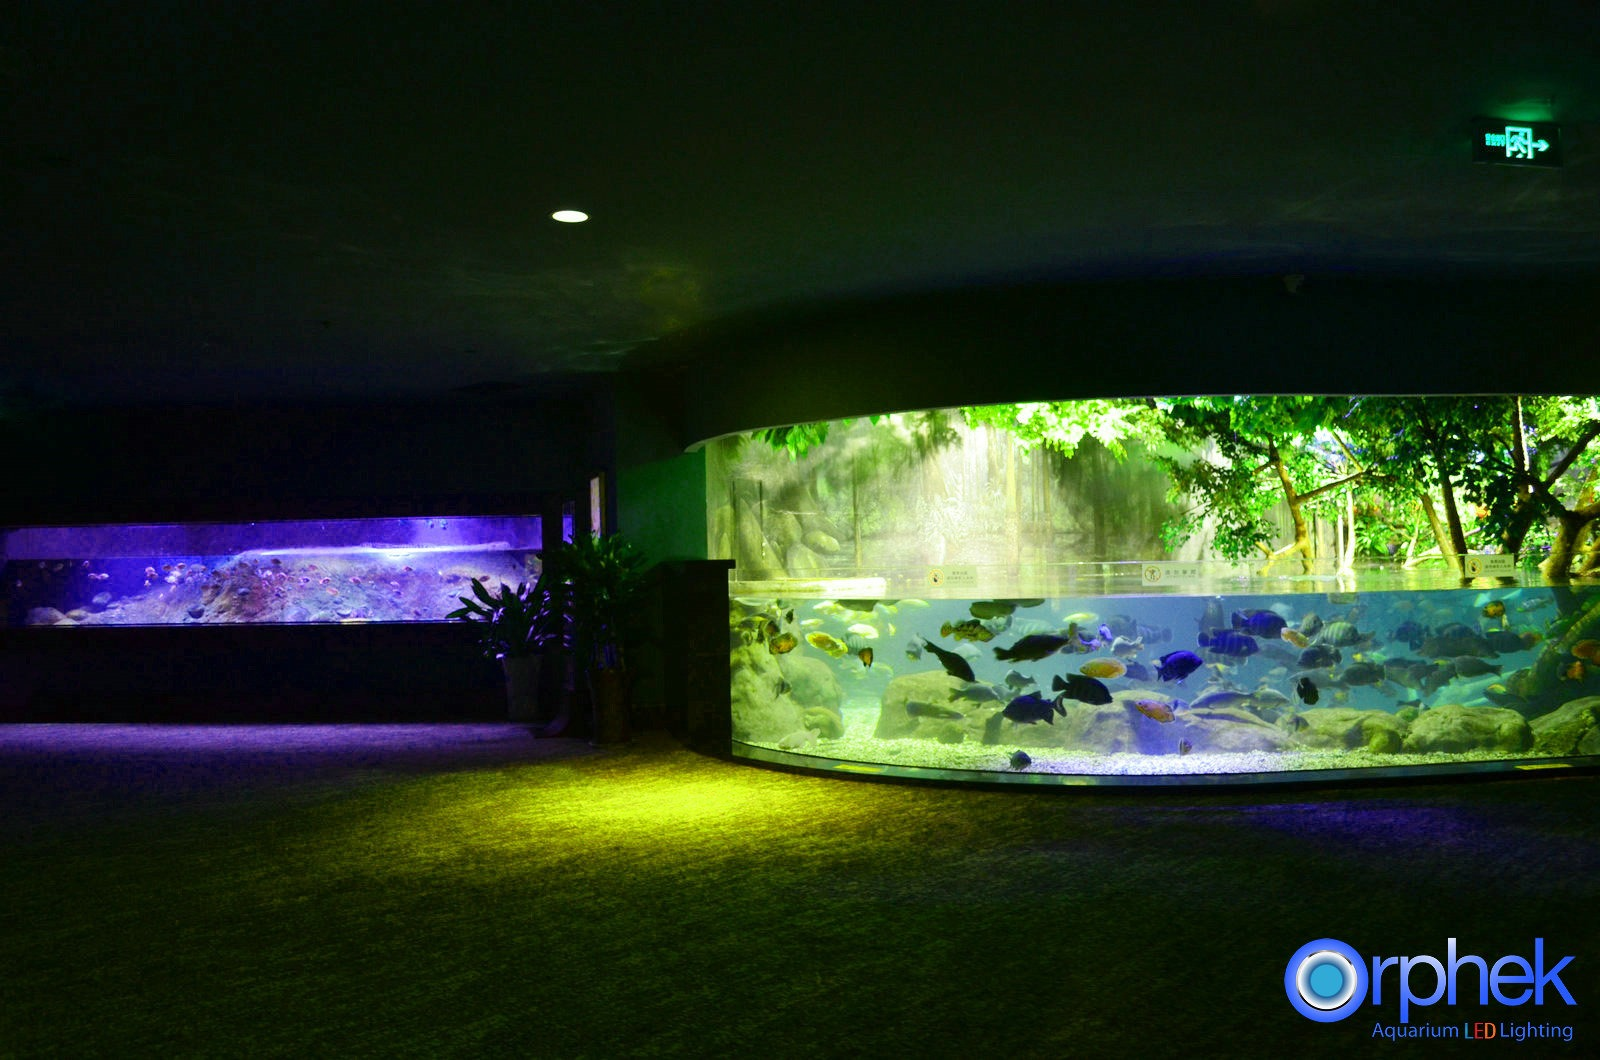 chengdu-public-aquarium-LED-lighting-amazon -flooded-forest-5